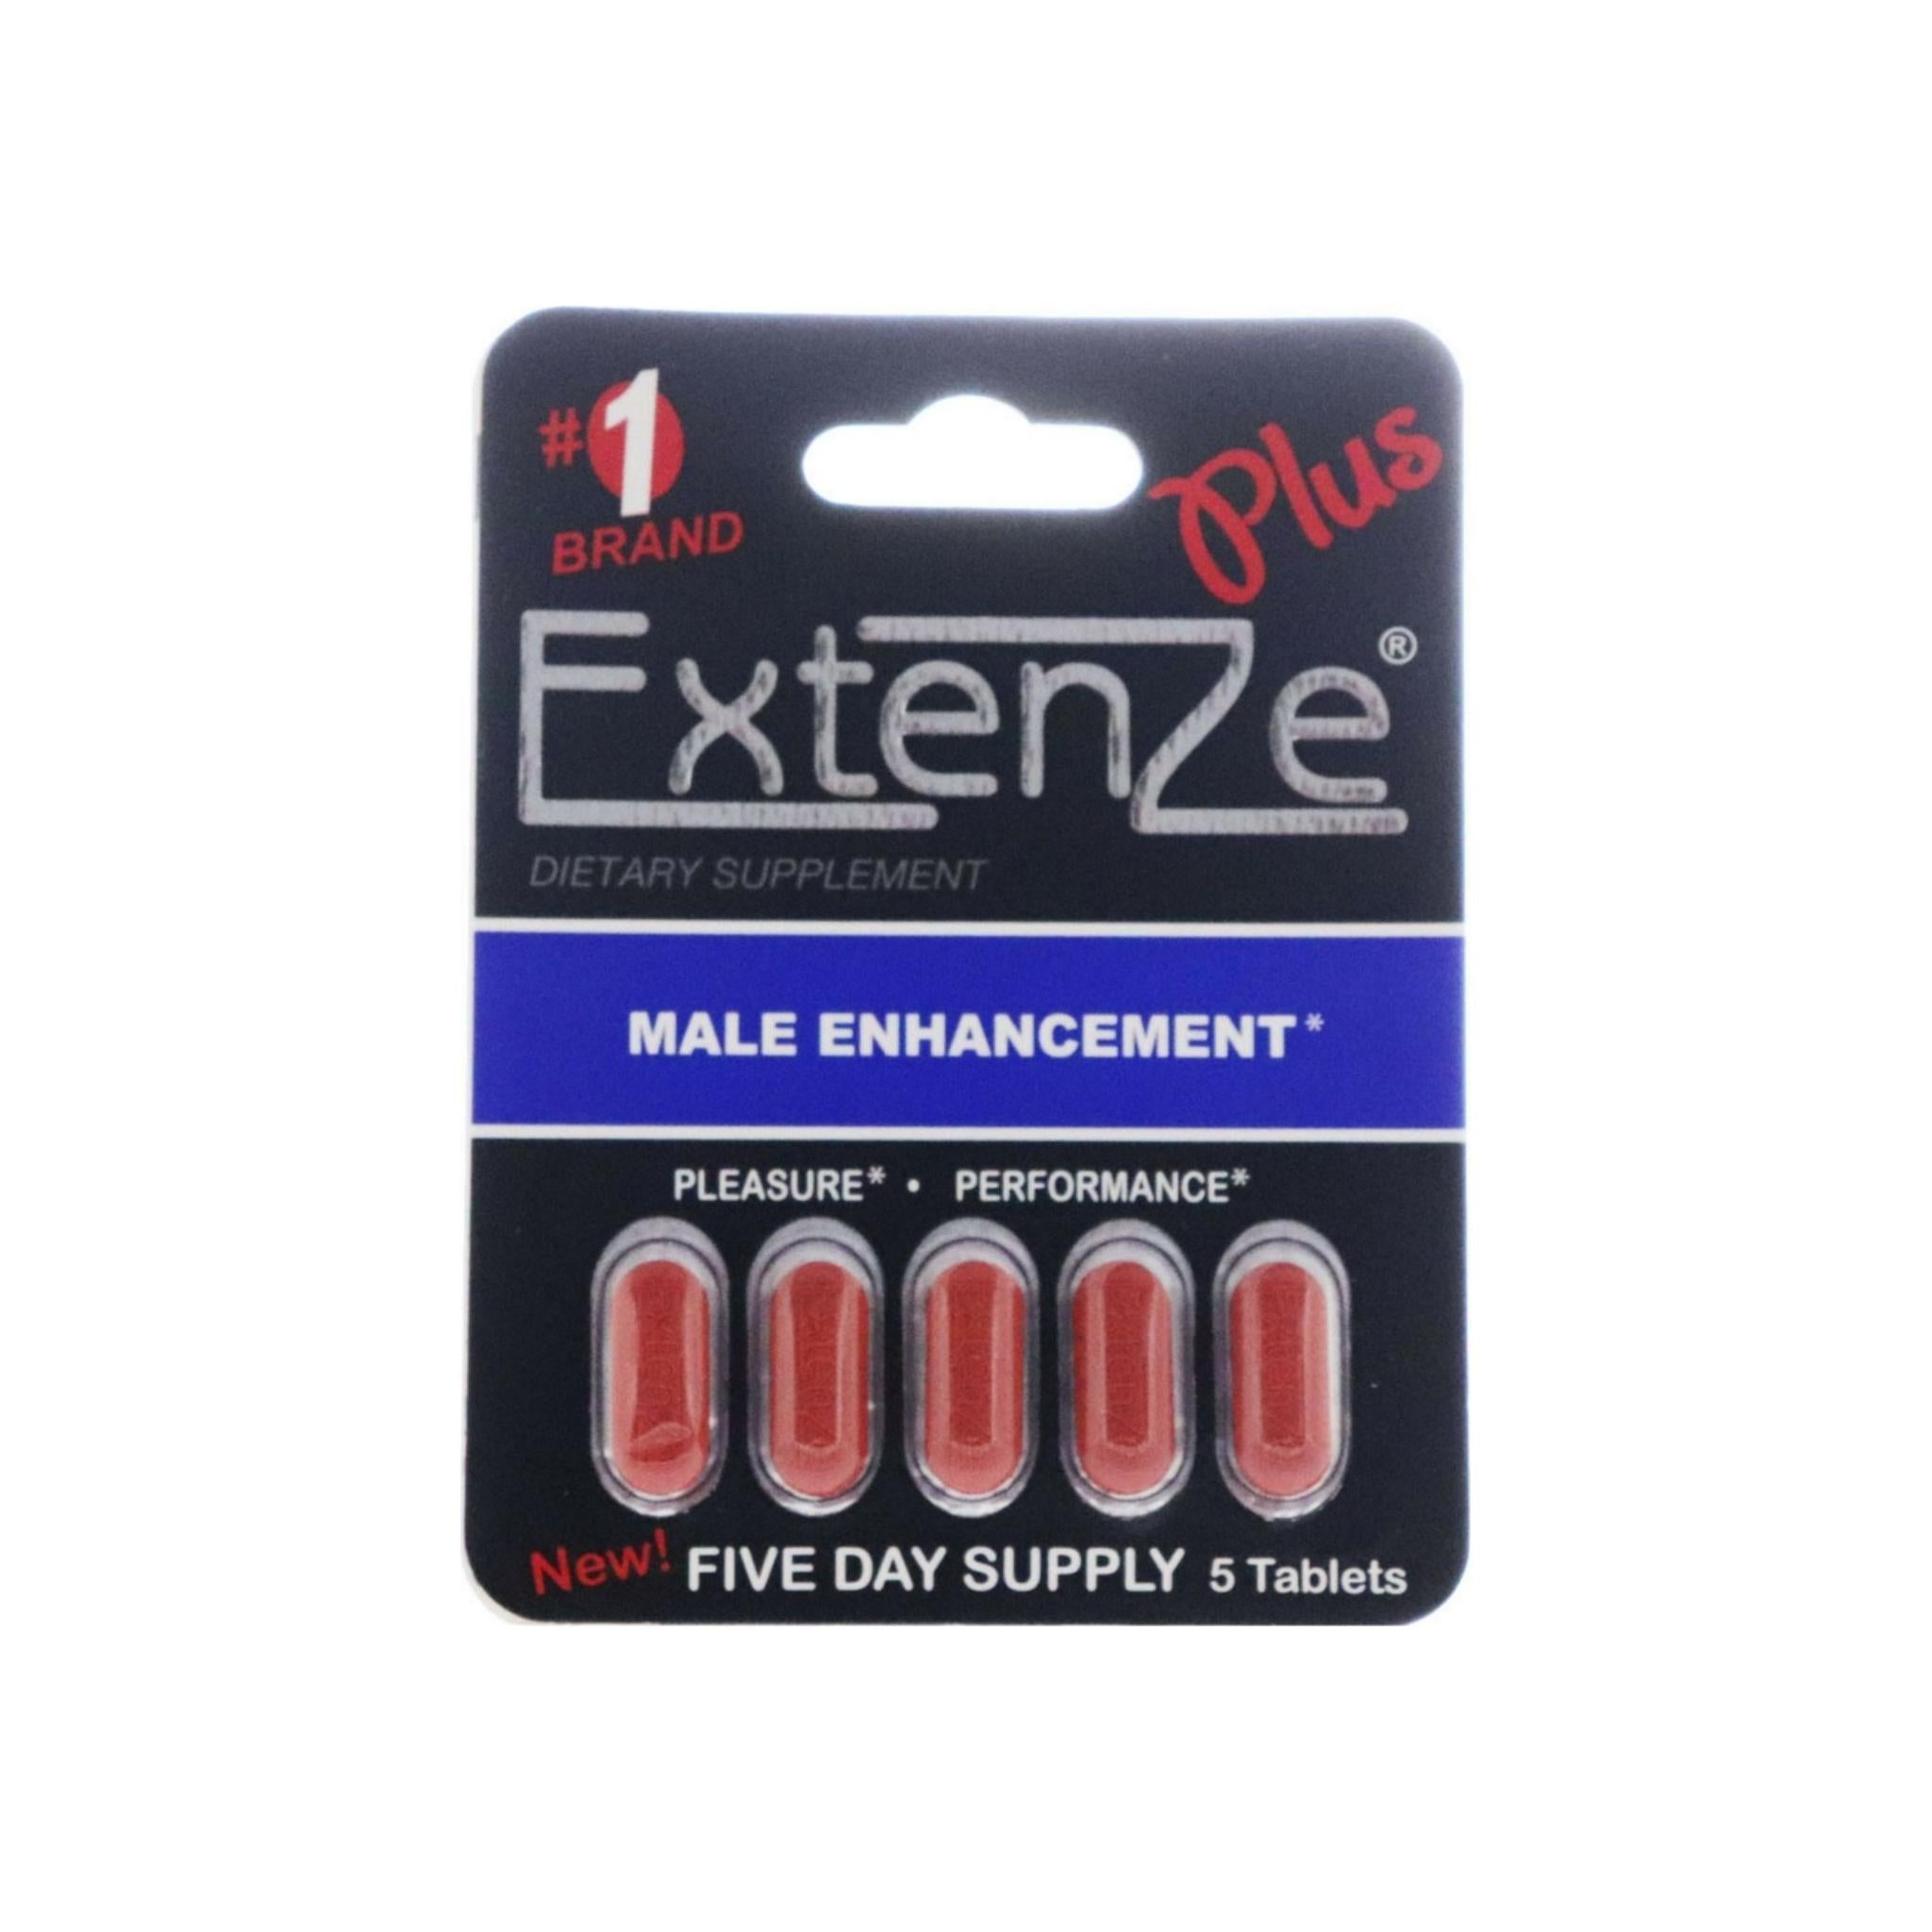 measurements in cm  Extenze